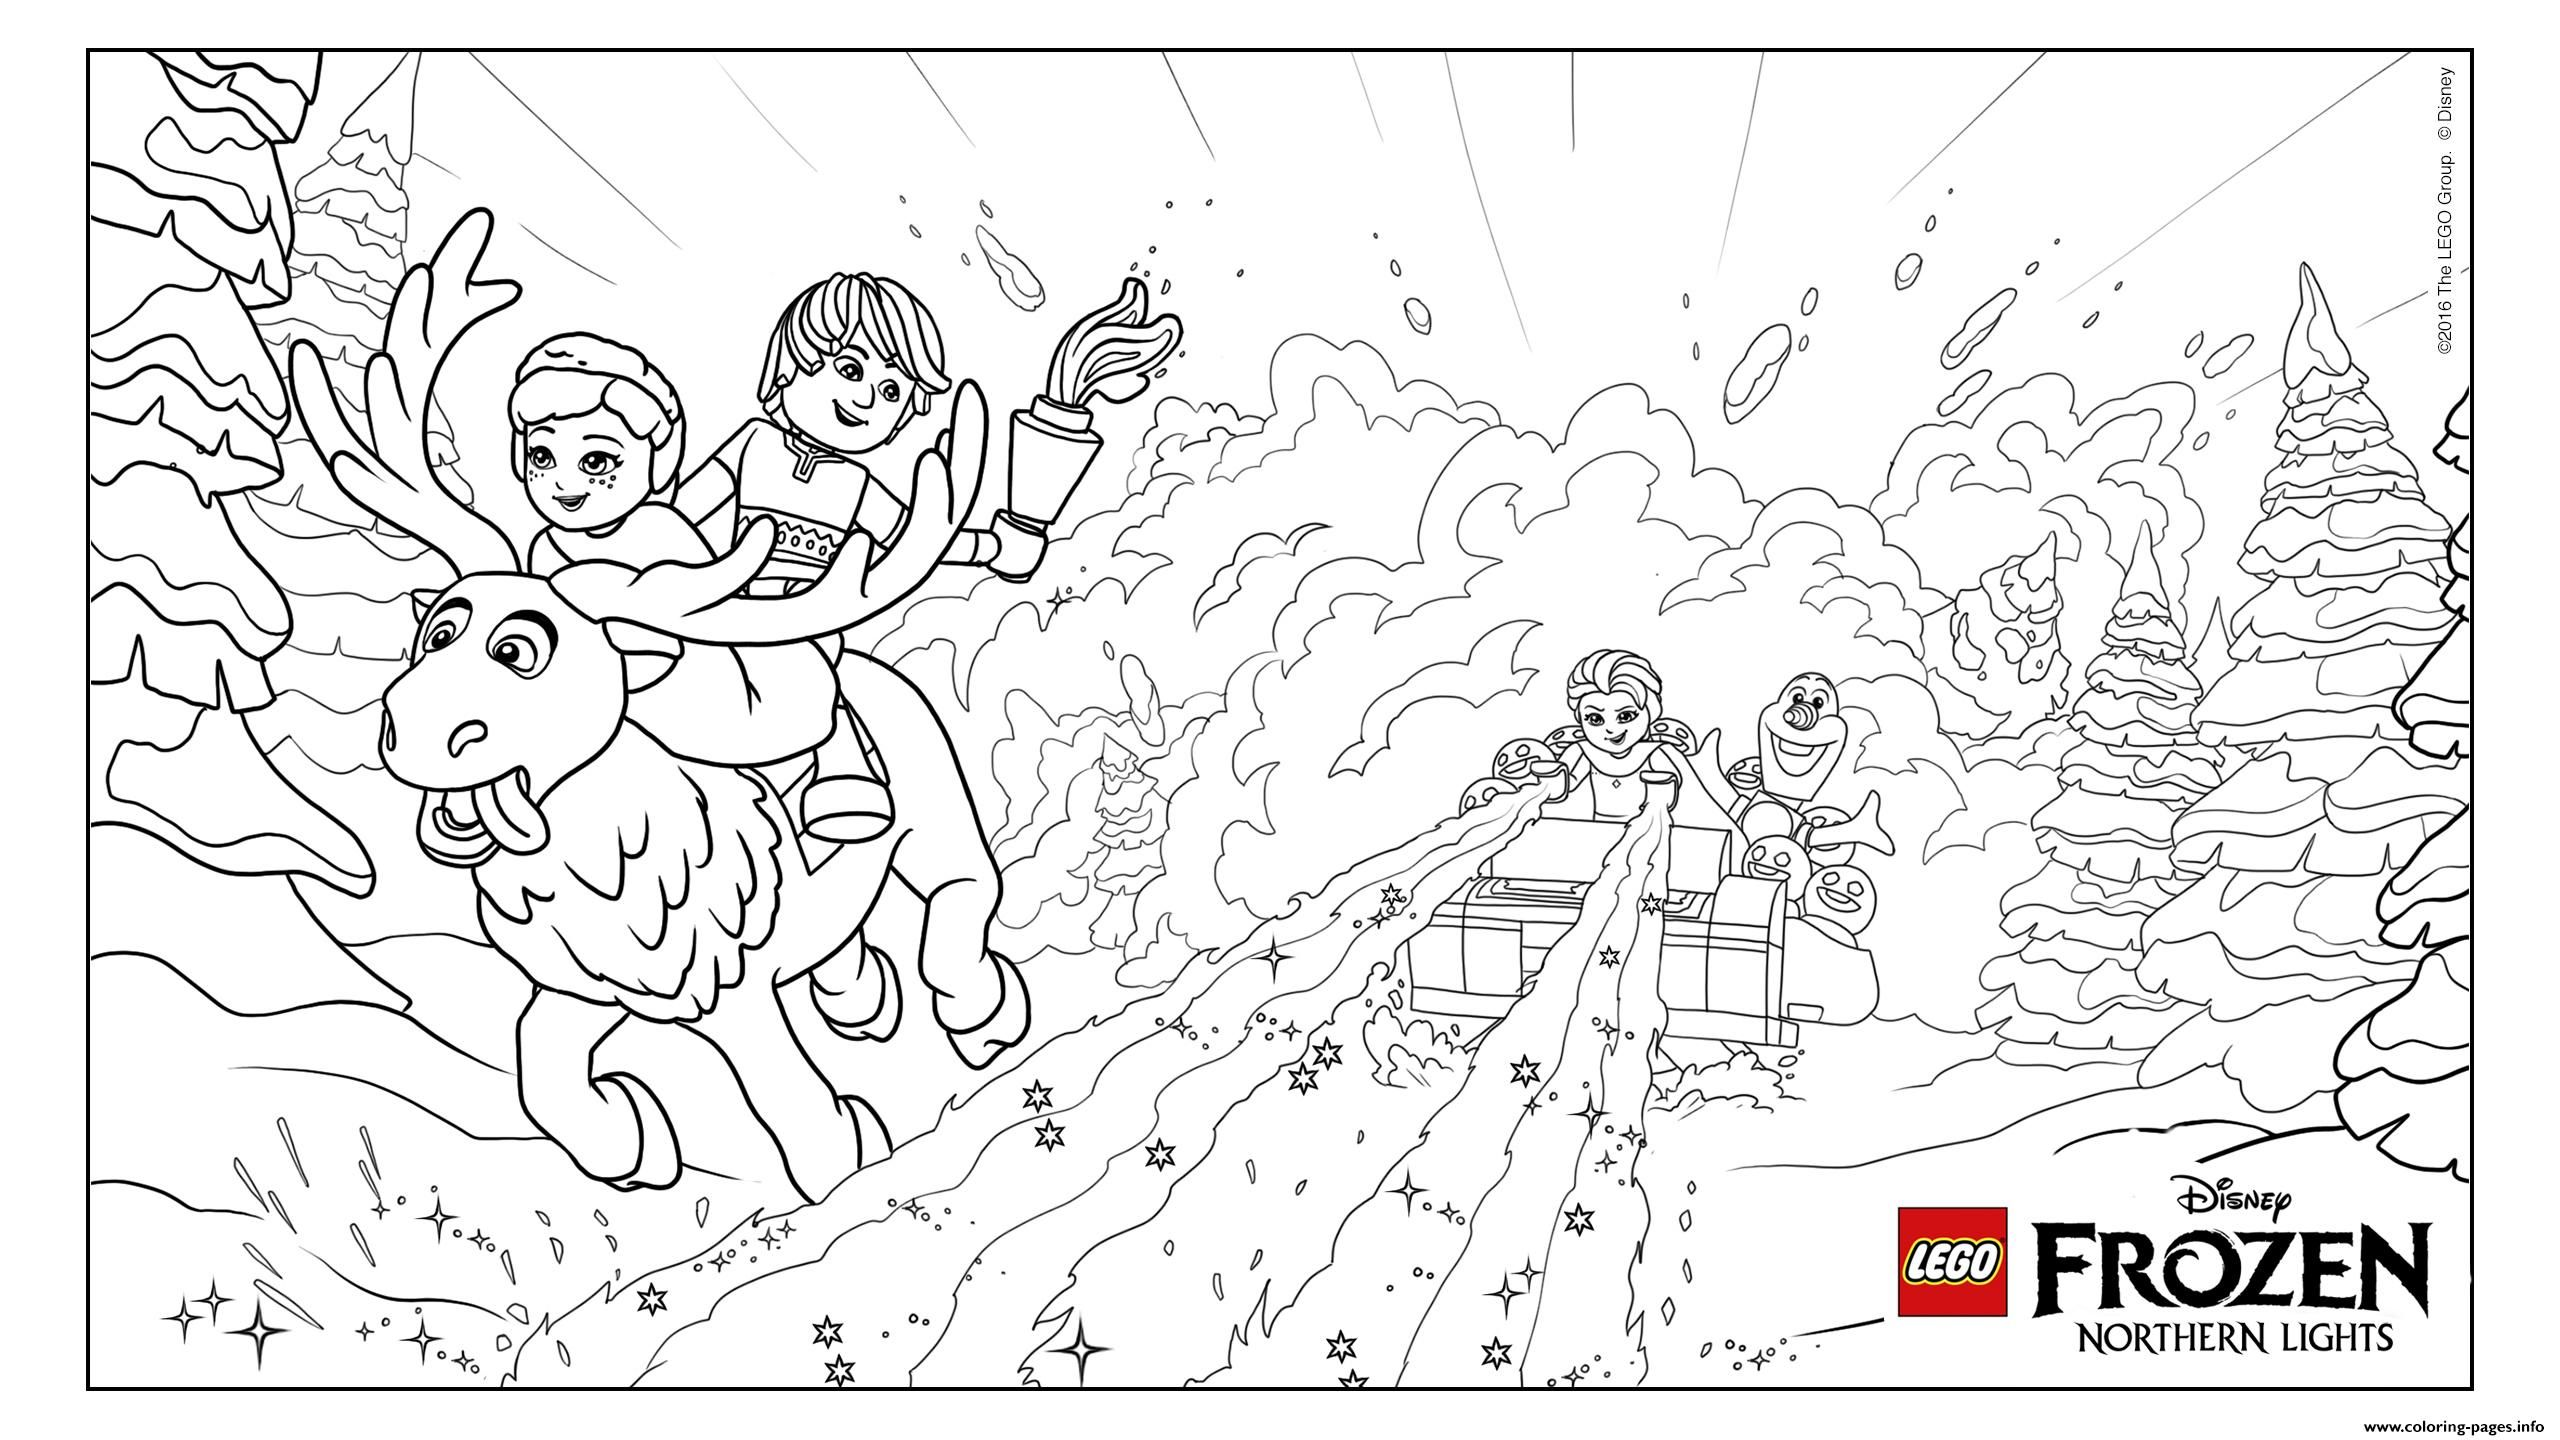 Print Frozen Nl Avalanche Lego Disney Coloring Pages Misc